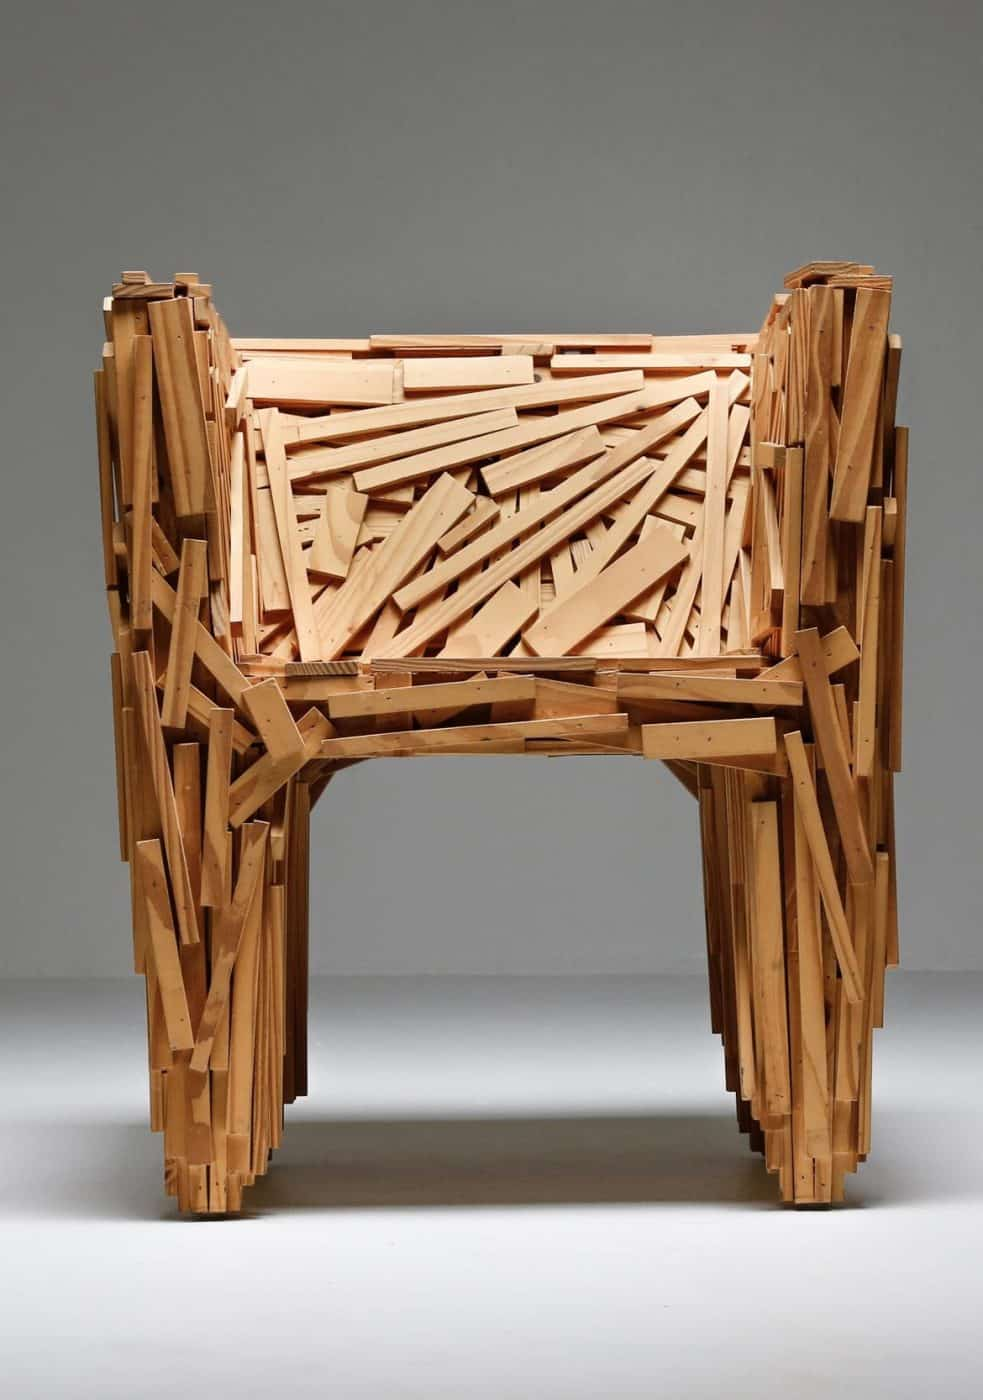 Campana Brothers Favela Chair made of strips of natural wood